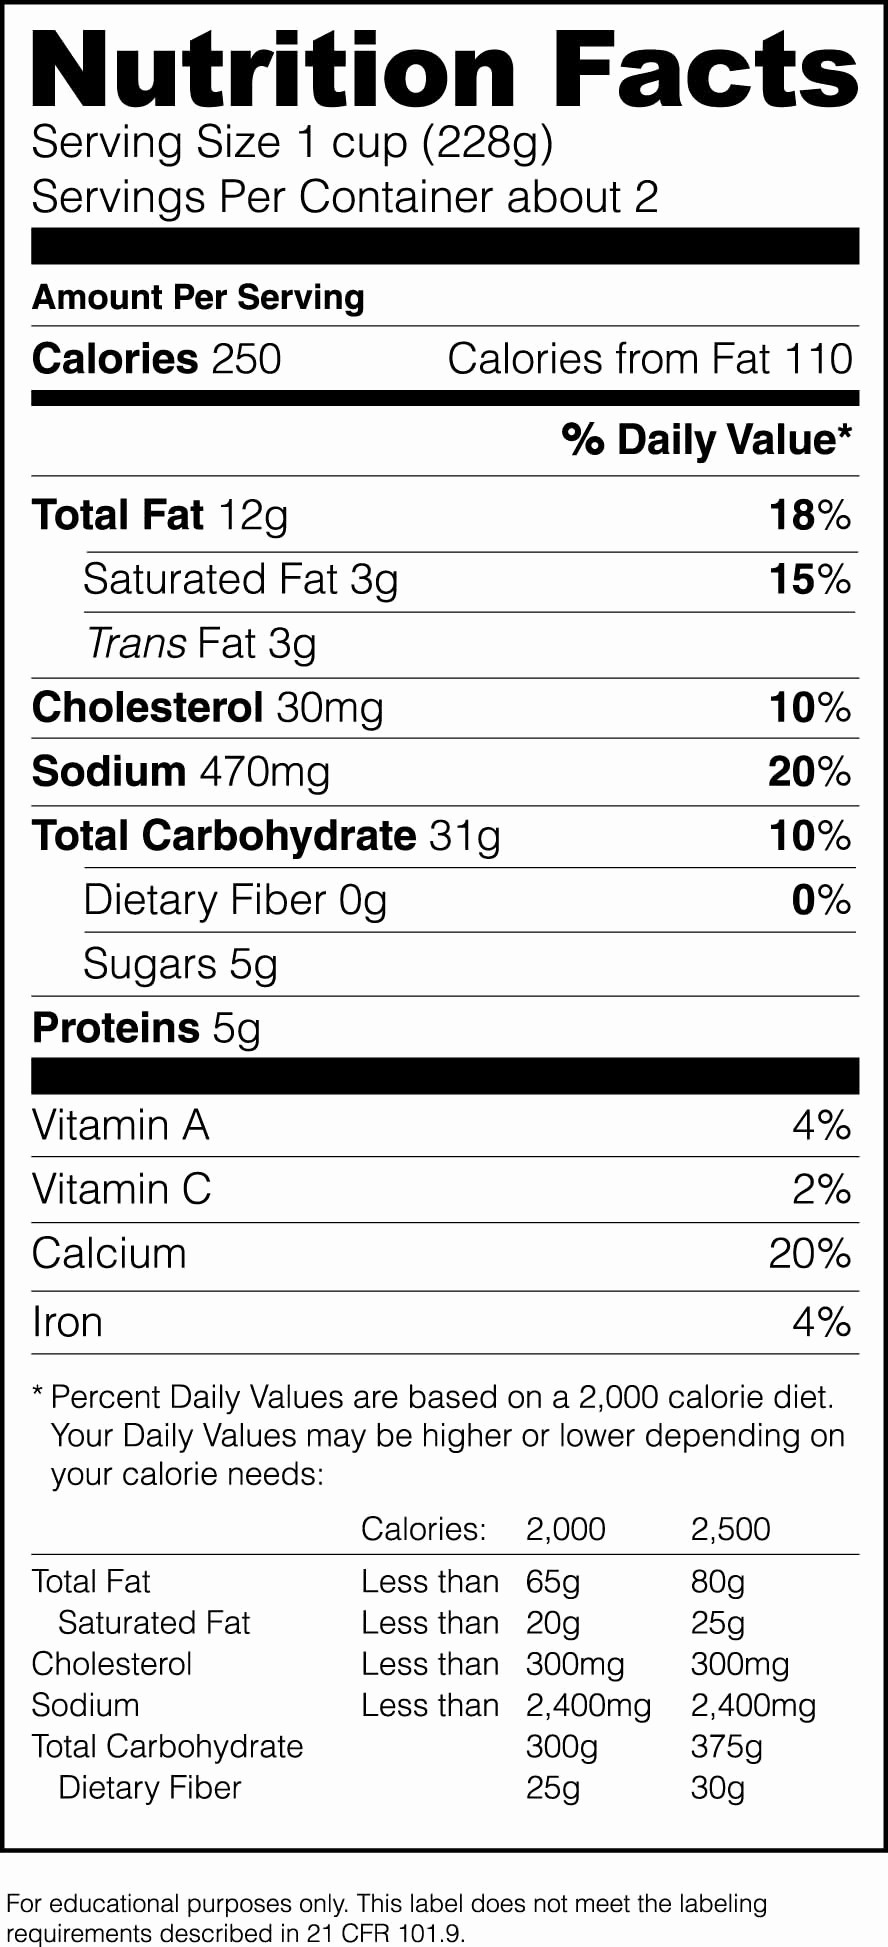 Nutrition Facts Template Excel Download New Caes News